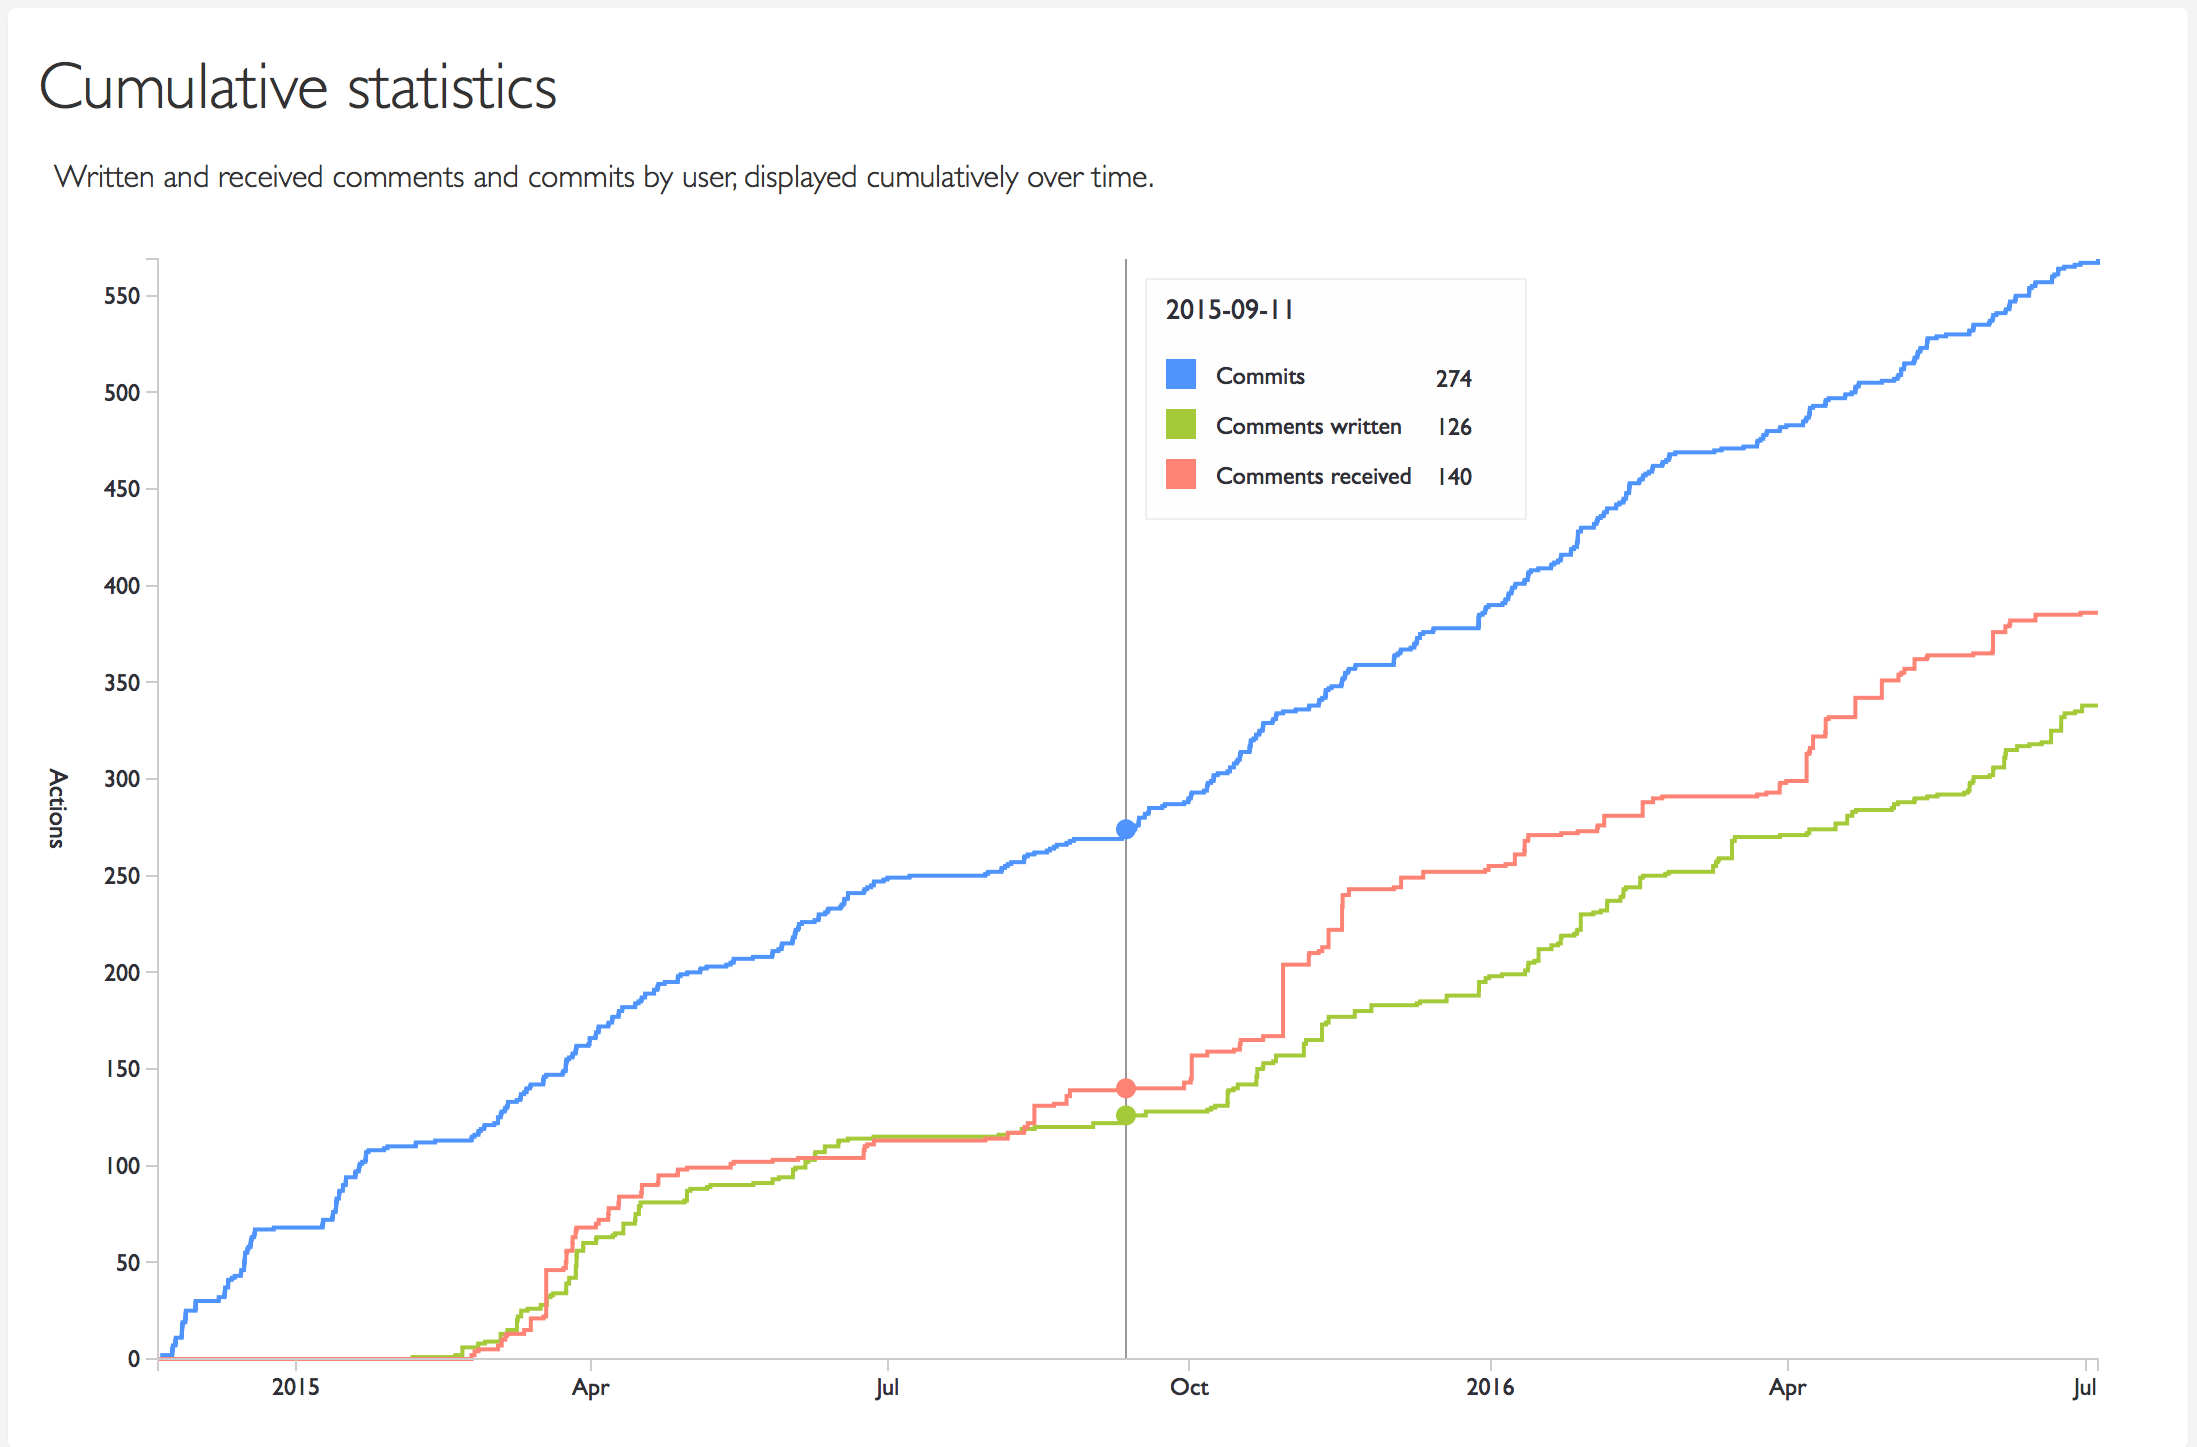 Cumulative statistics chart of commits, and comments written/received